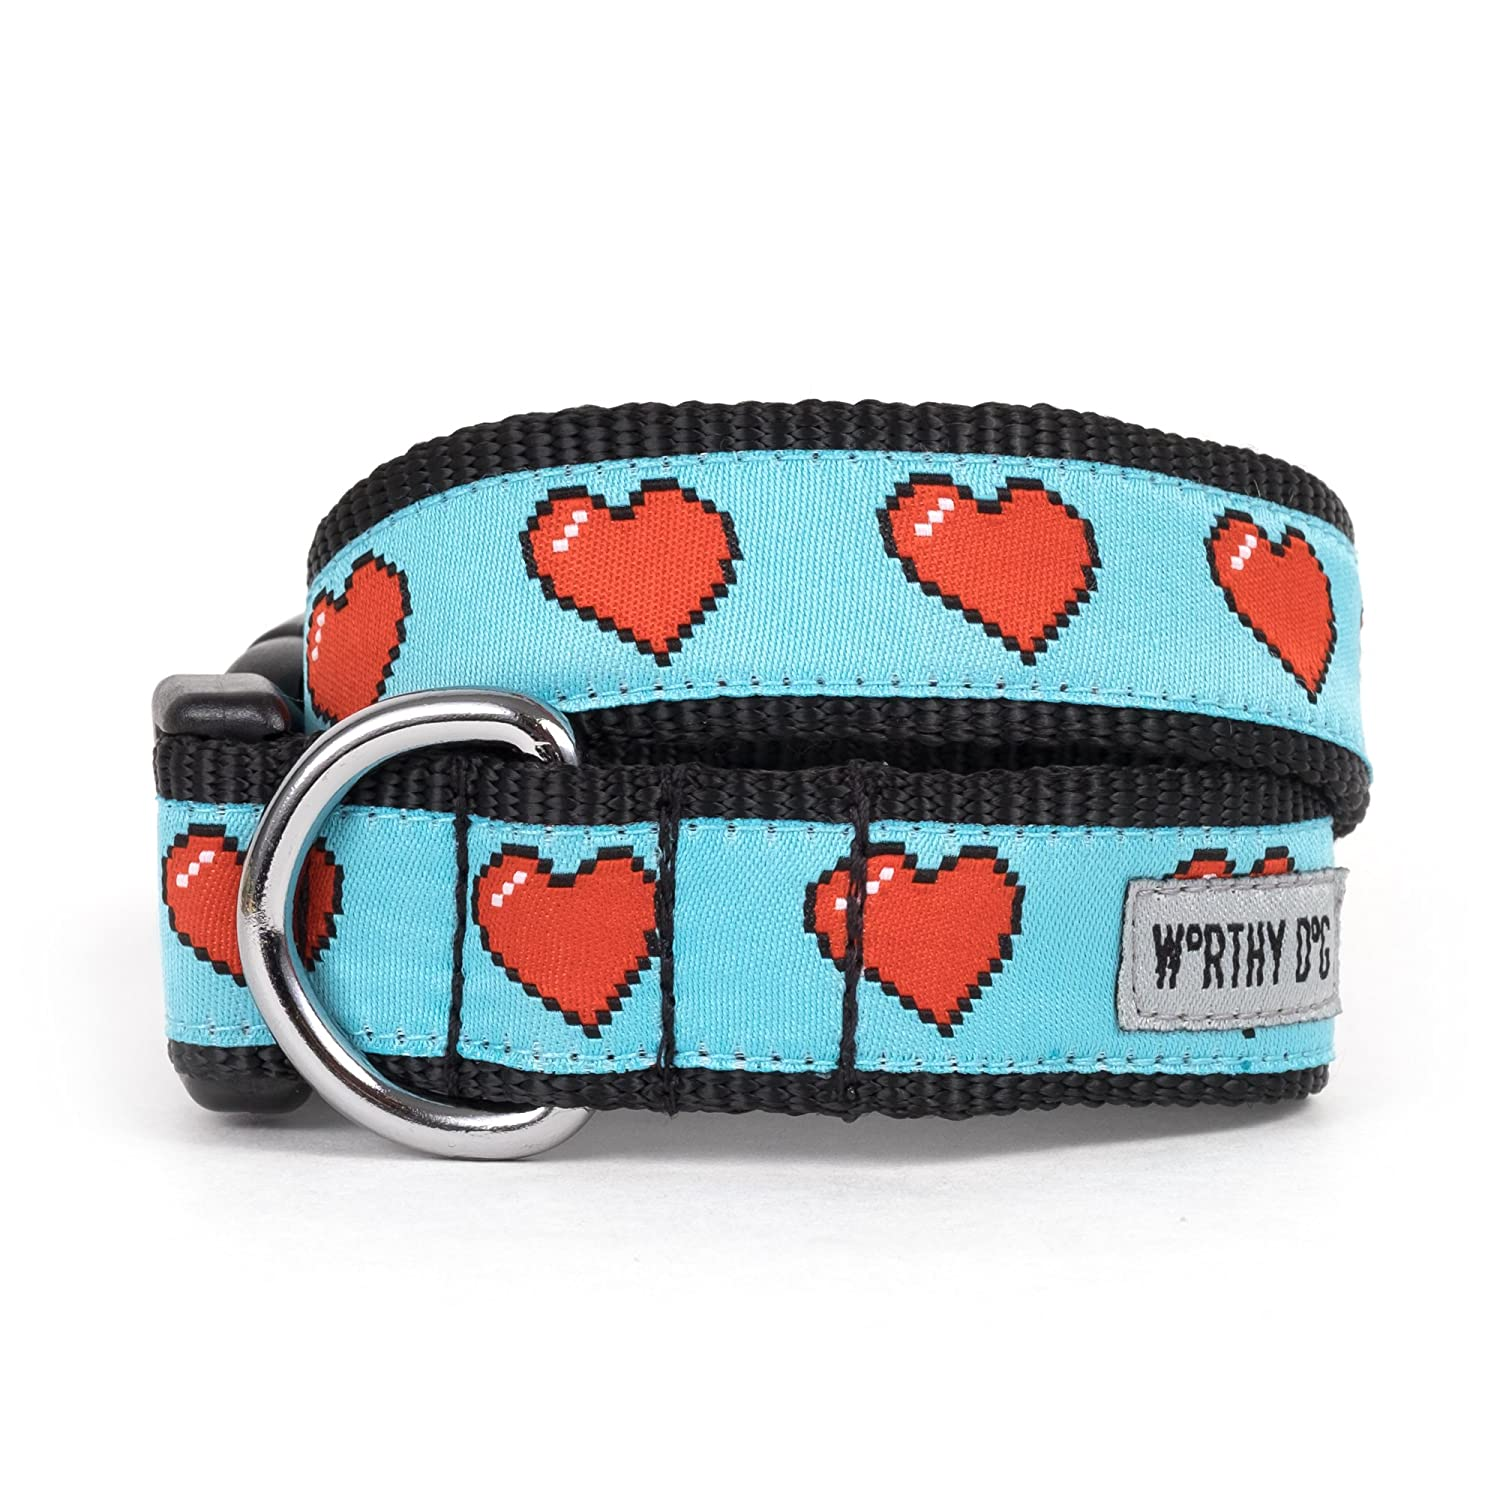 bluee, X-Small The Worthy Dog Graphic Red Heart Adjustable Designer Pet Dog Collar, bluee, X-Small